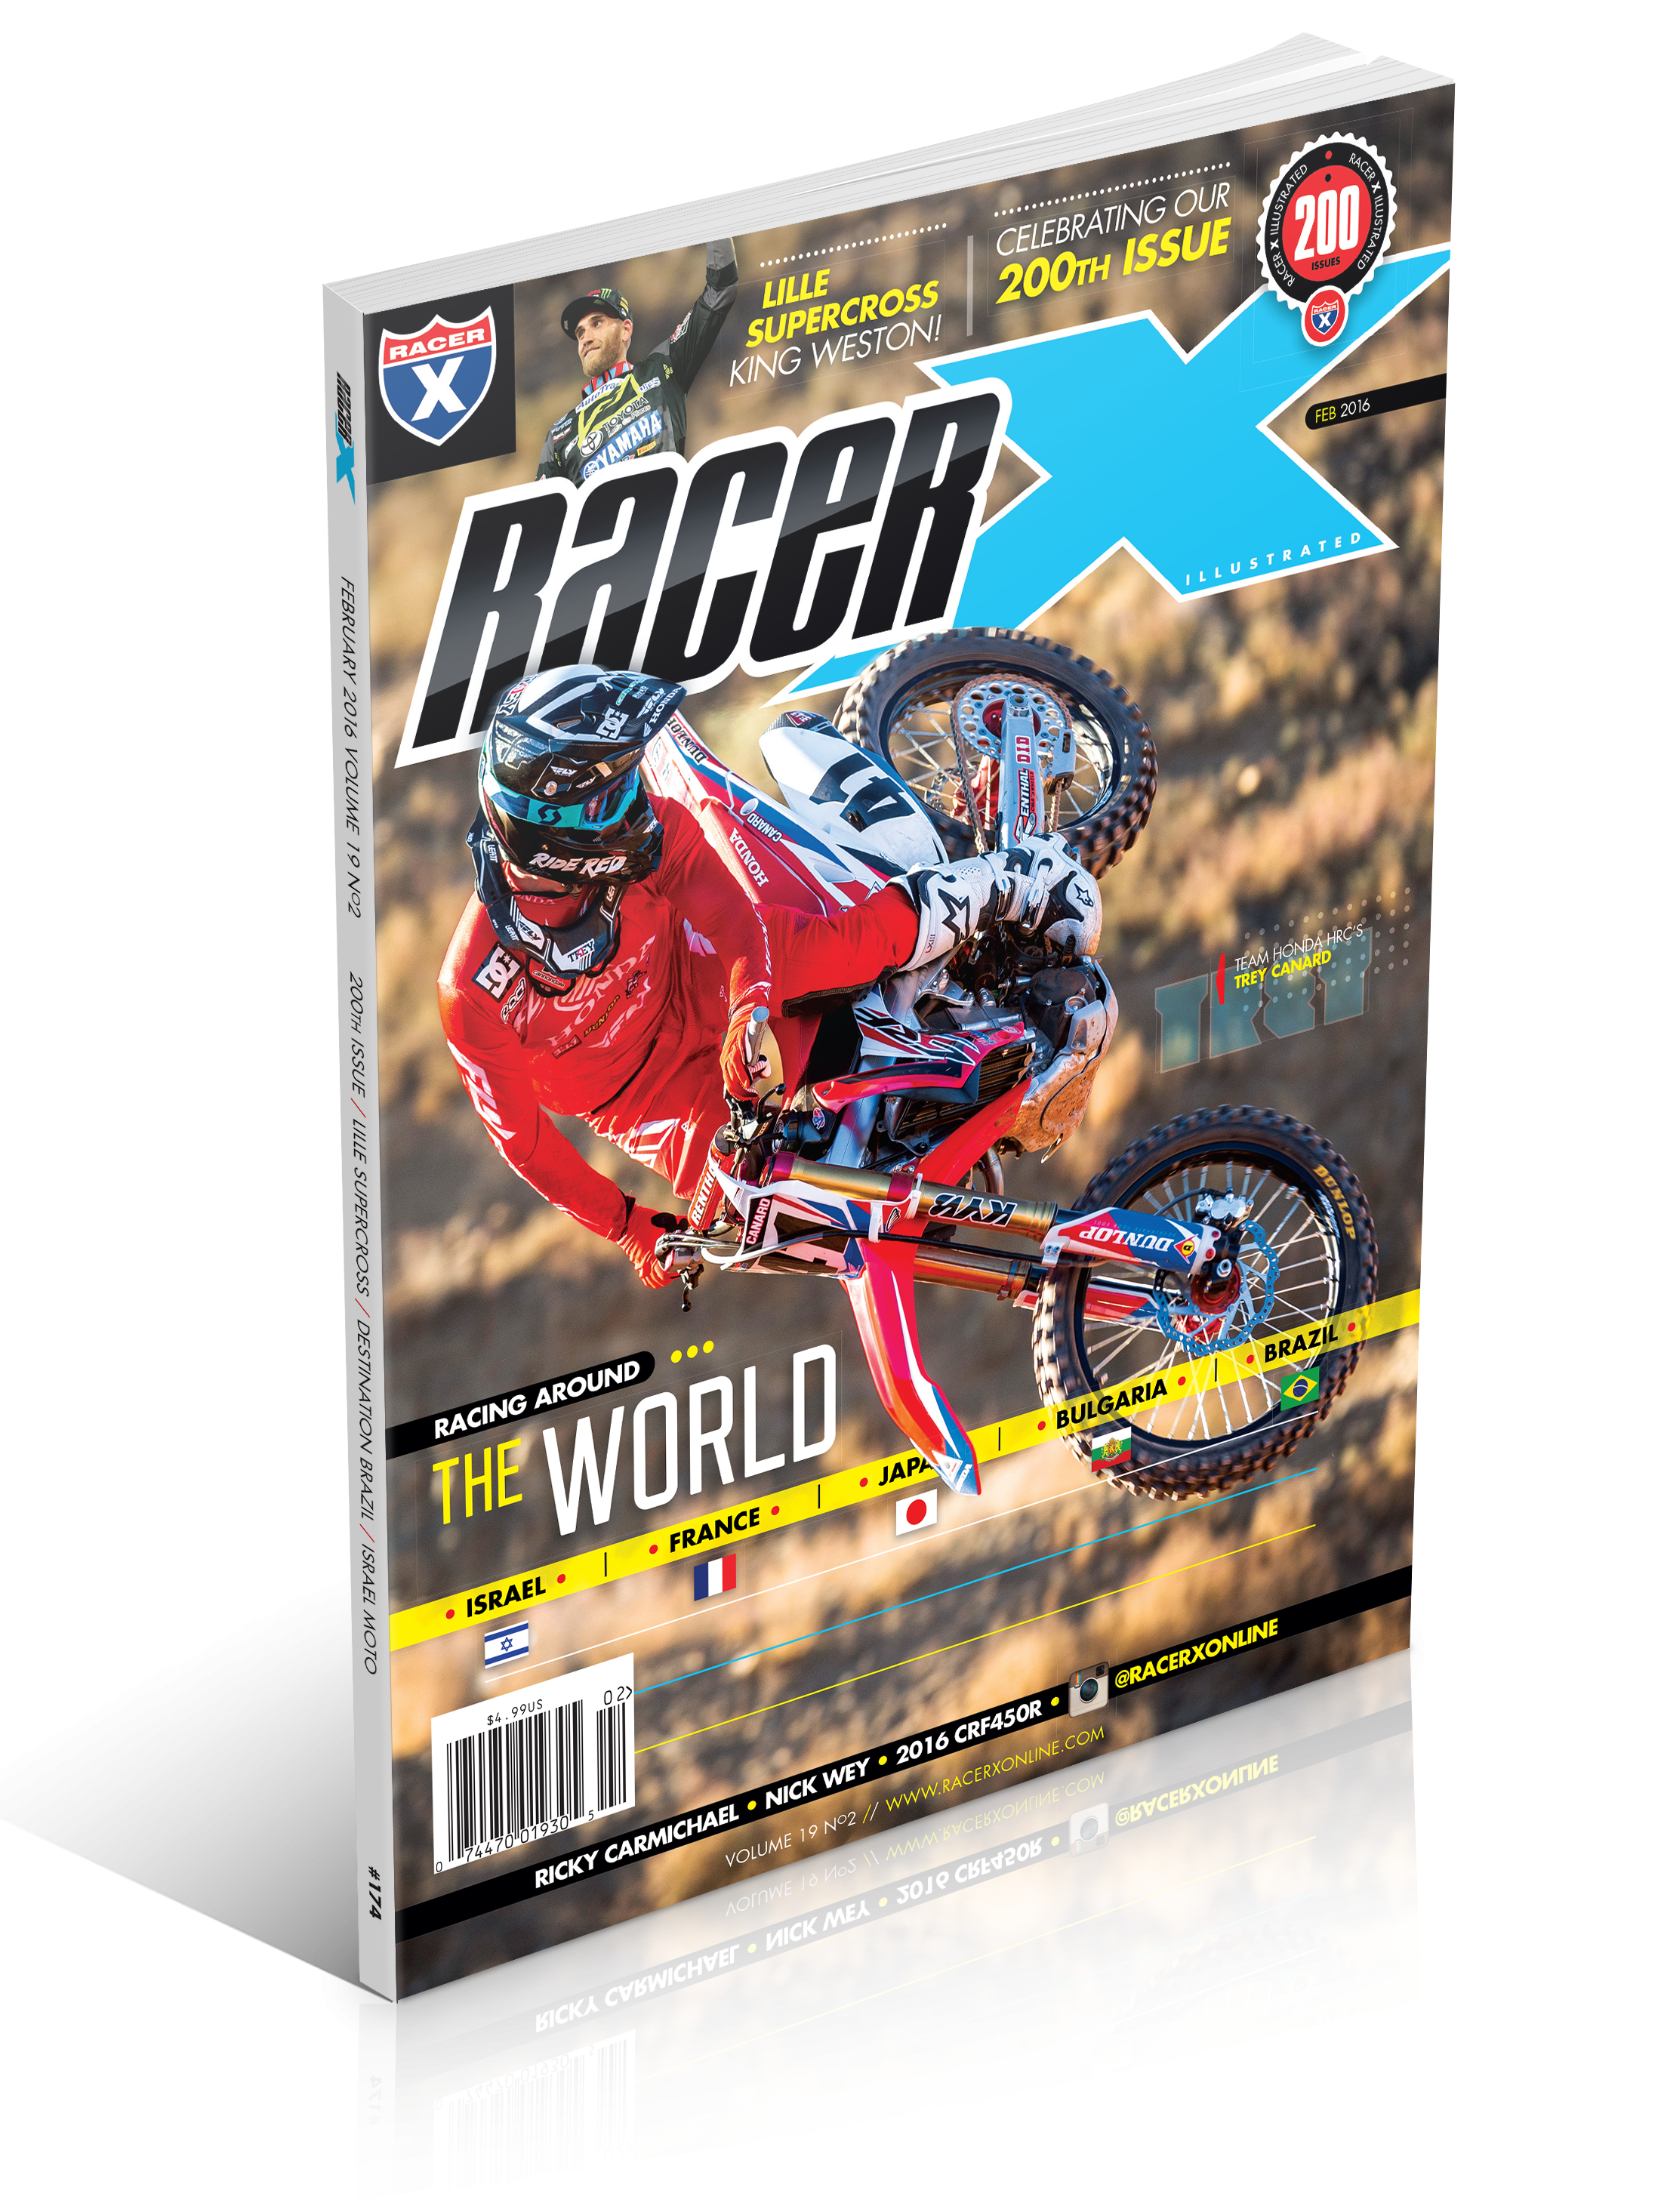 The February 2016 Issue - Racer X Illustrated Supercross Magazine